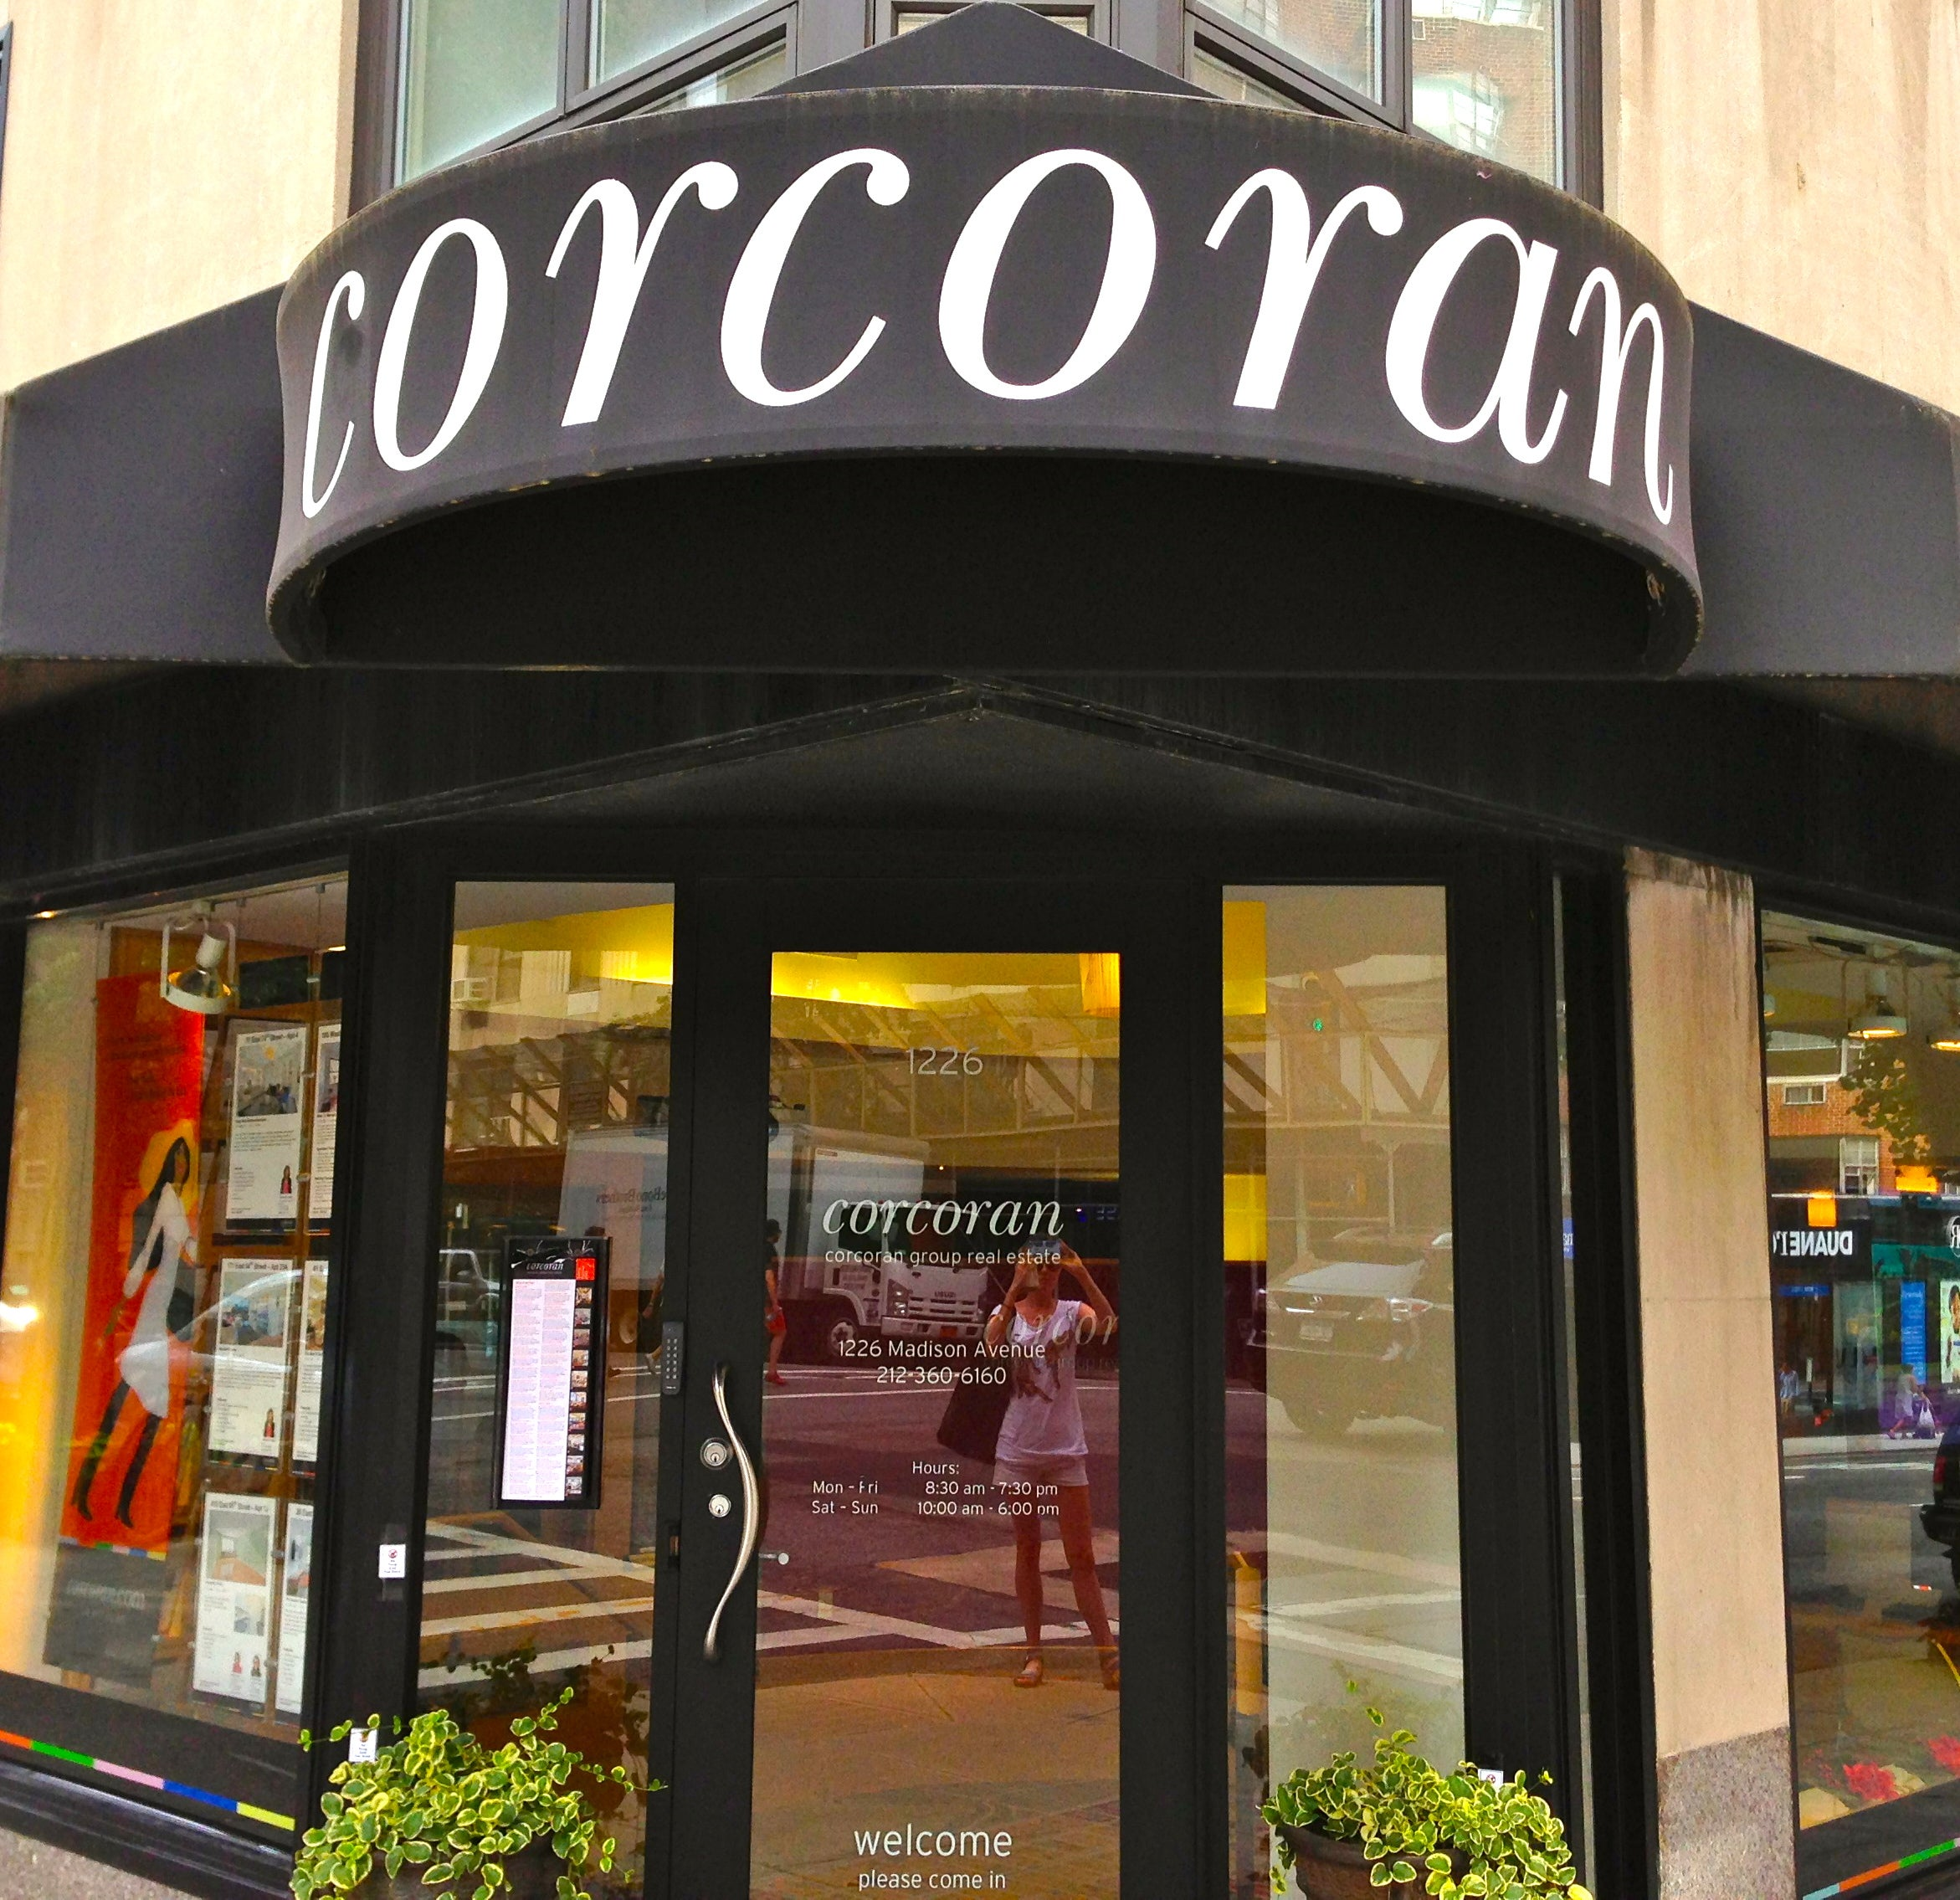 Corcoran Group,apartments for sale,brokers,carnegie hill,co-ops,condos,corcoran,digital media,homes,interactive,manhattan,mobile,offices,open houses,property,real estate,real estate agents,realtors,rentals,search,social media,townhouses,upper east side